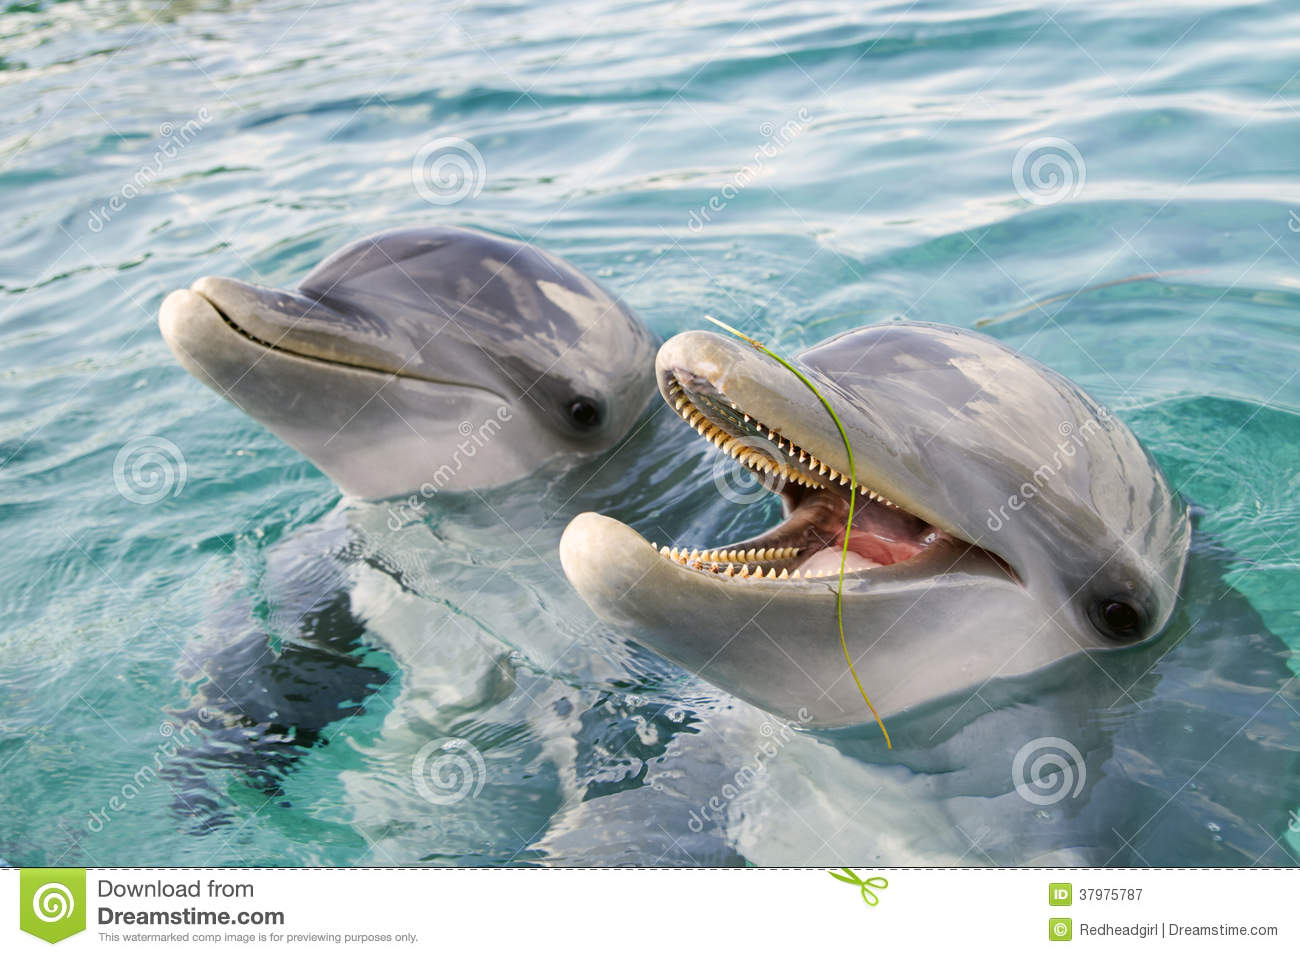 Two bottle-nosed dolphins